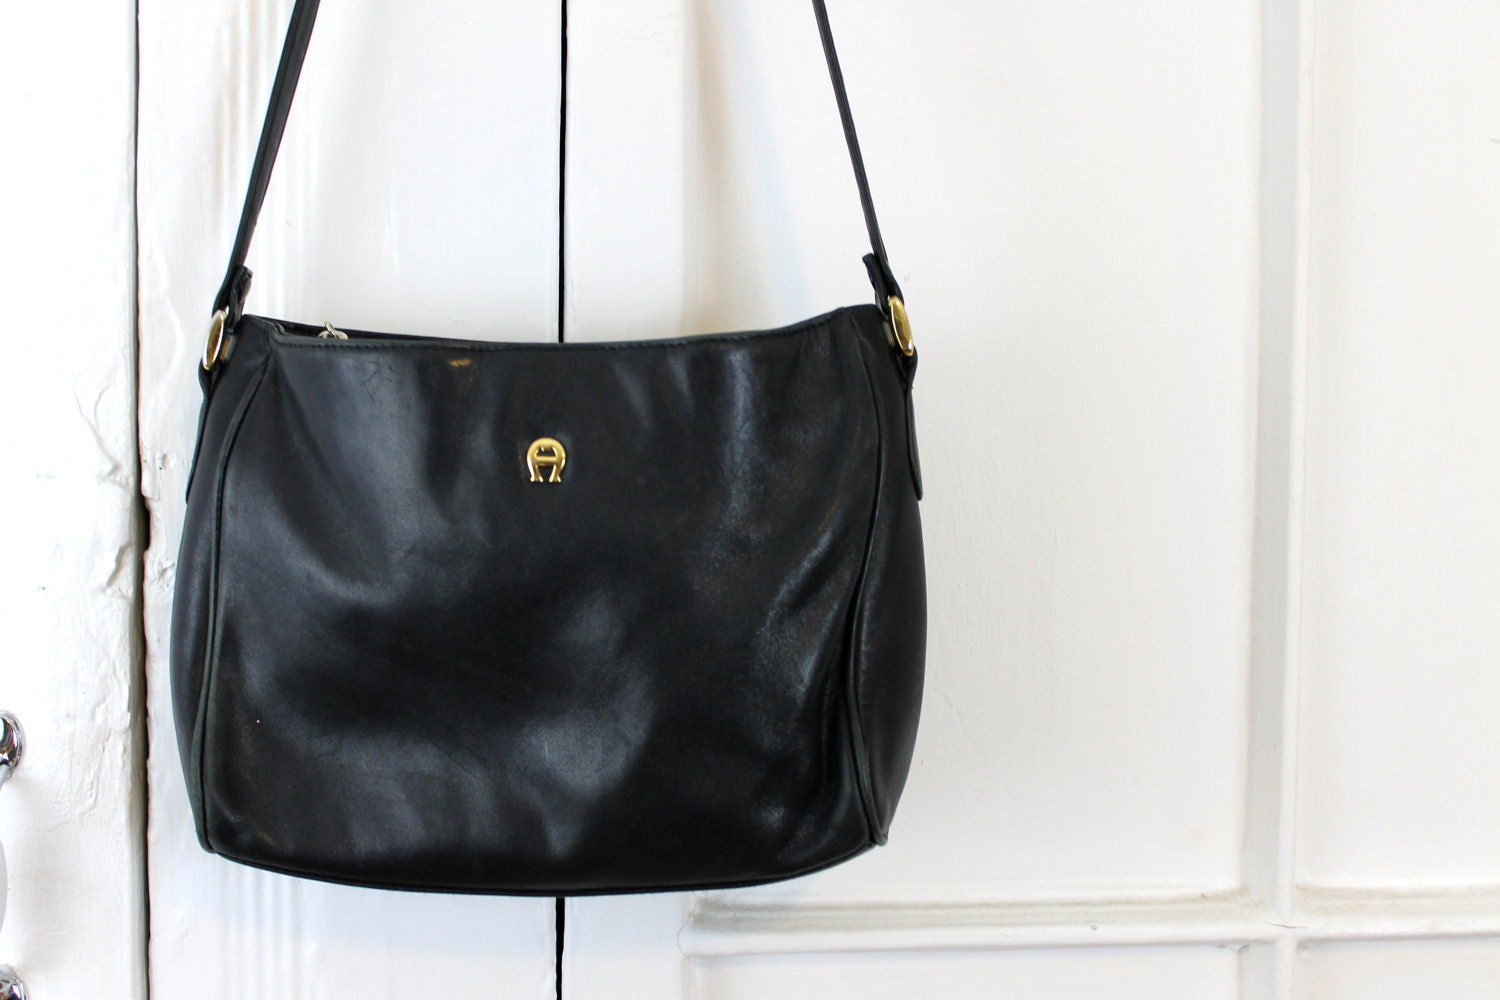 e4542018989 black-leather-purses-rocker-style.html in unowadopewo.github.com | source  code search engine